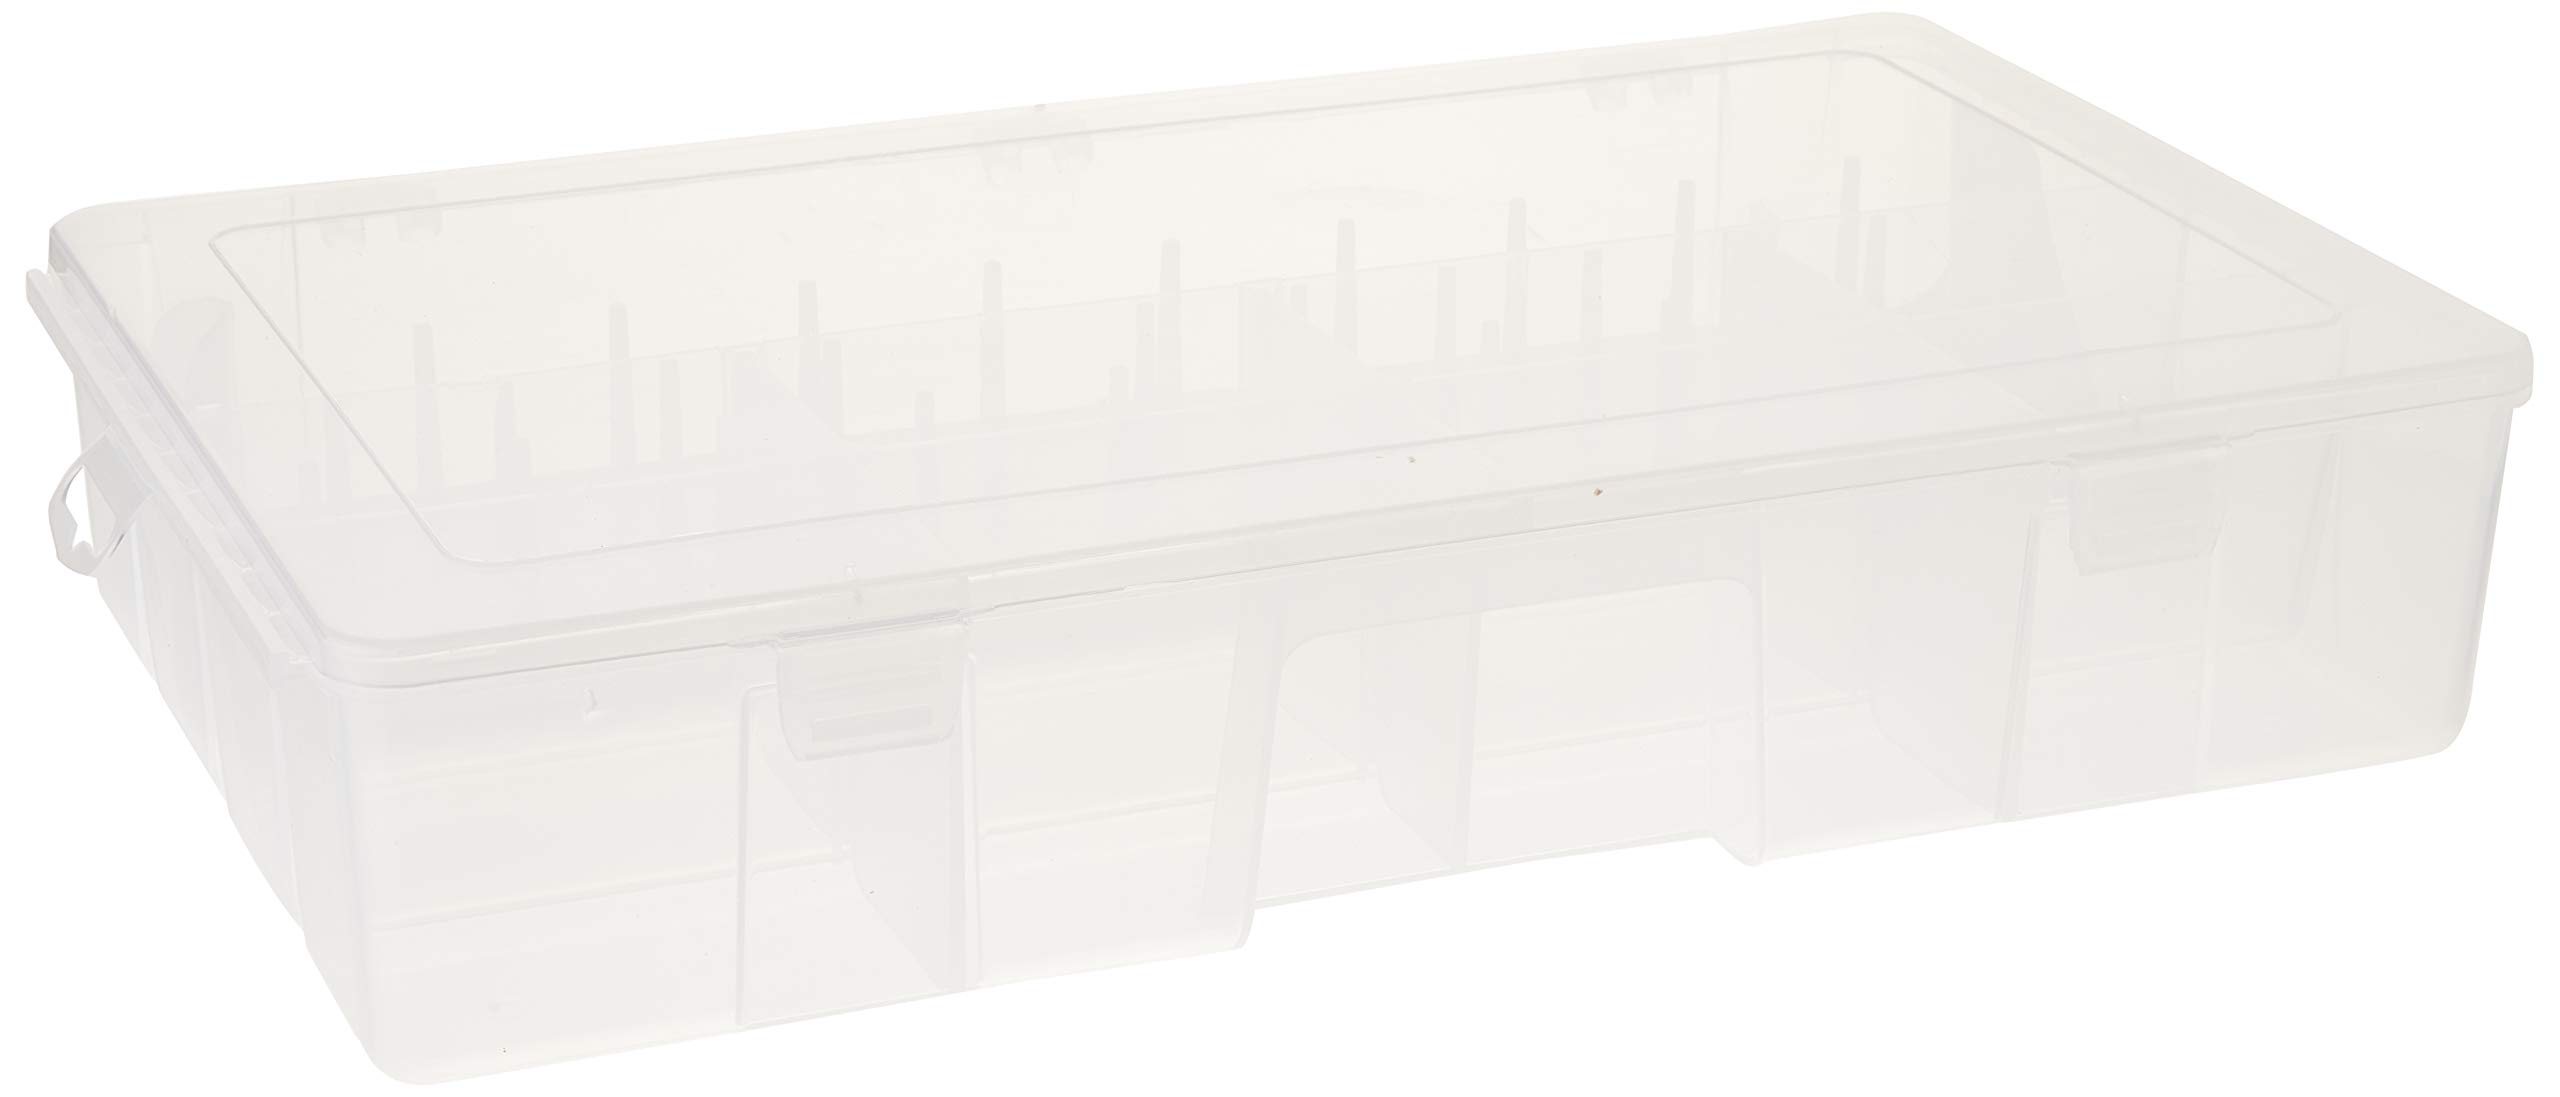 ArtBin 7003AB LUTIONS Sewing Supply Storage System by ArtBin